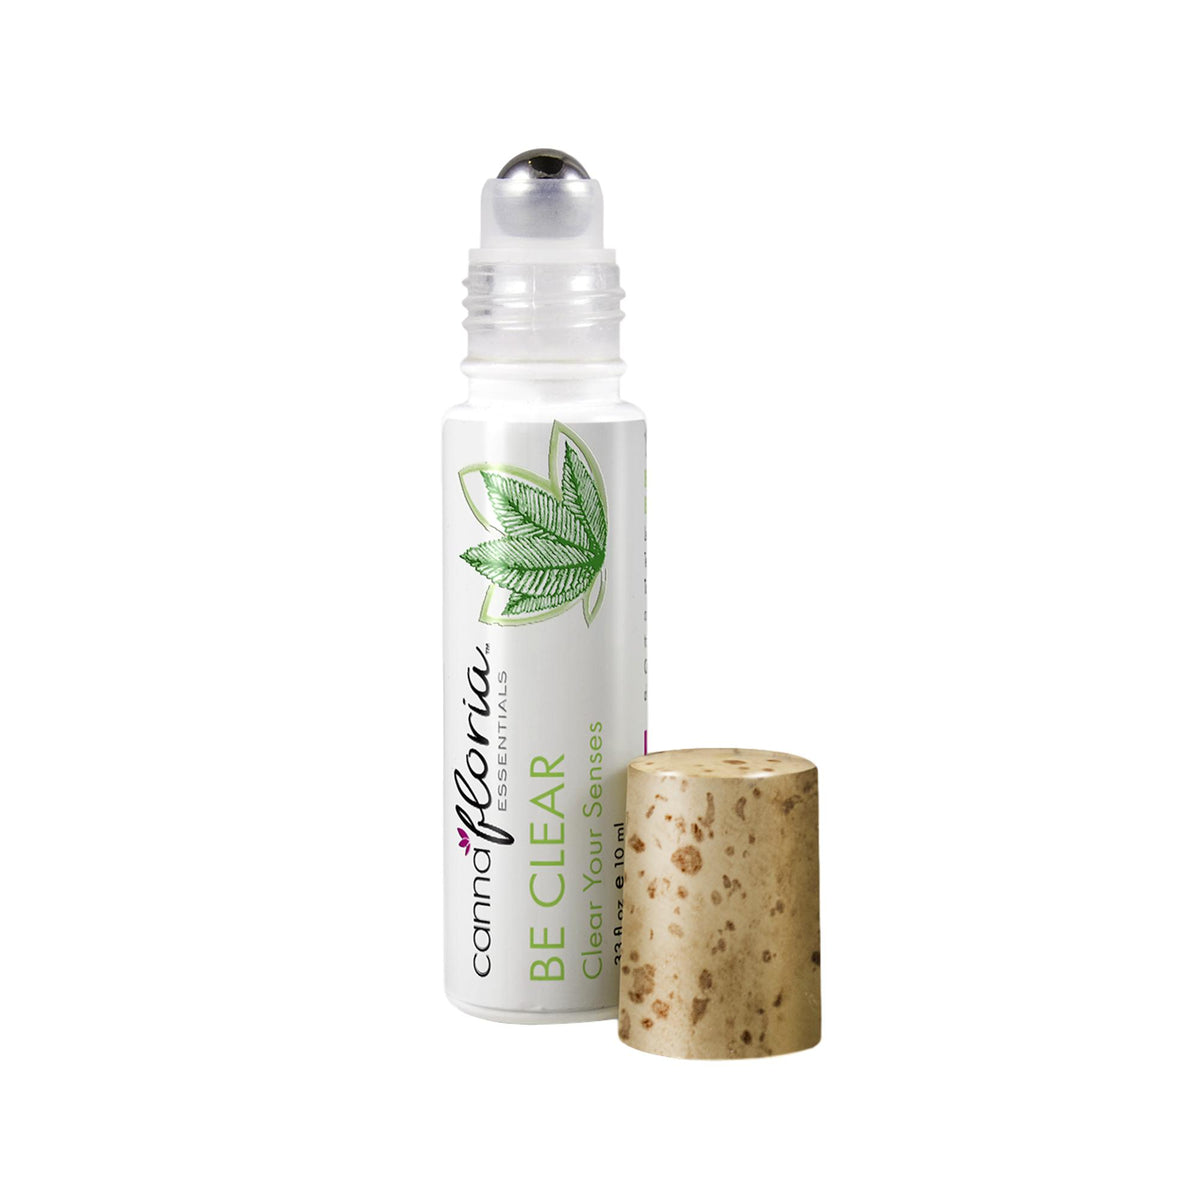 Cannafloria Aromatherapy Roll-On, Be Clear